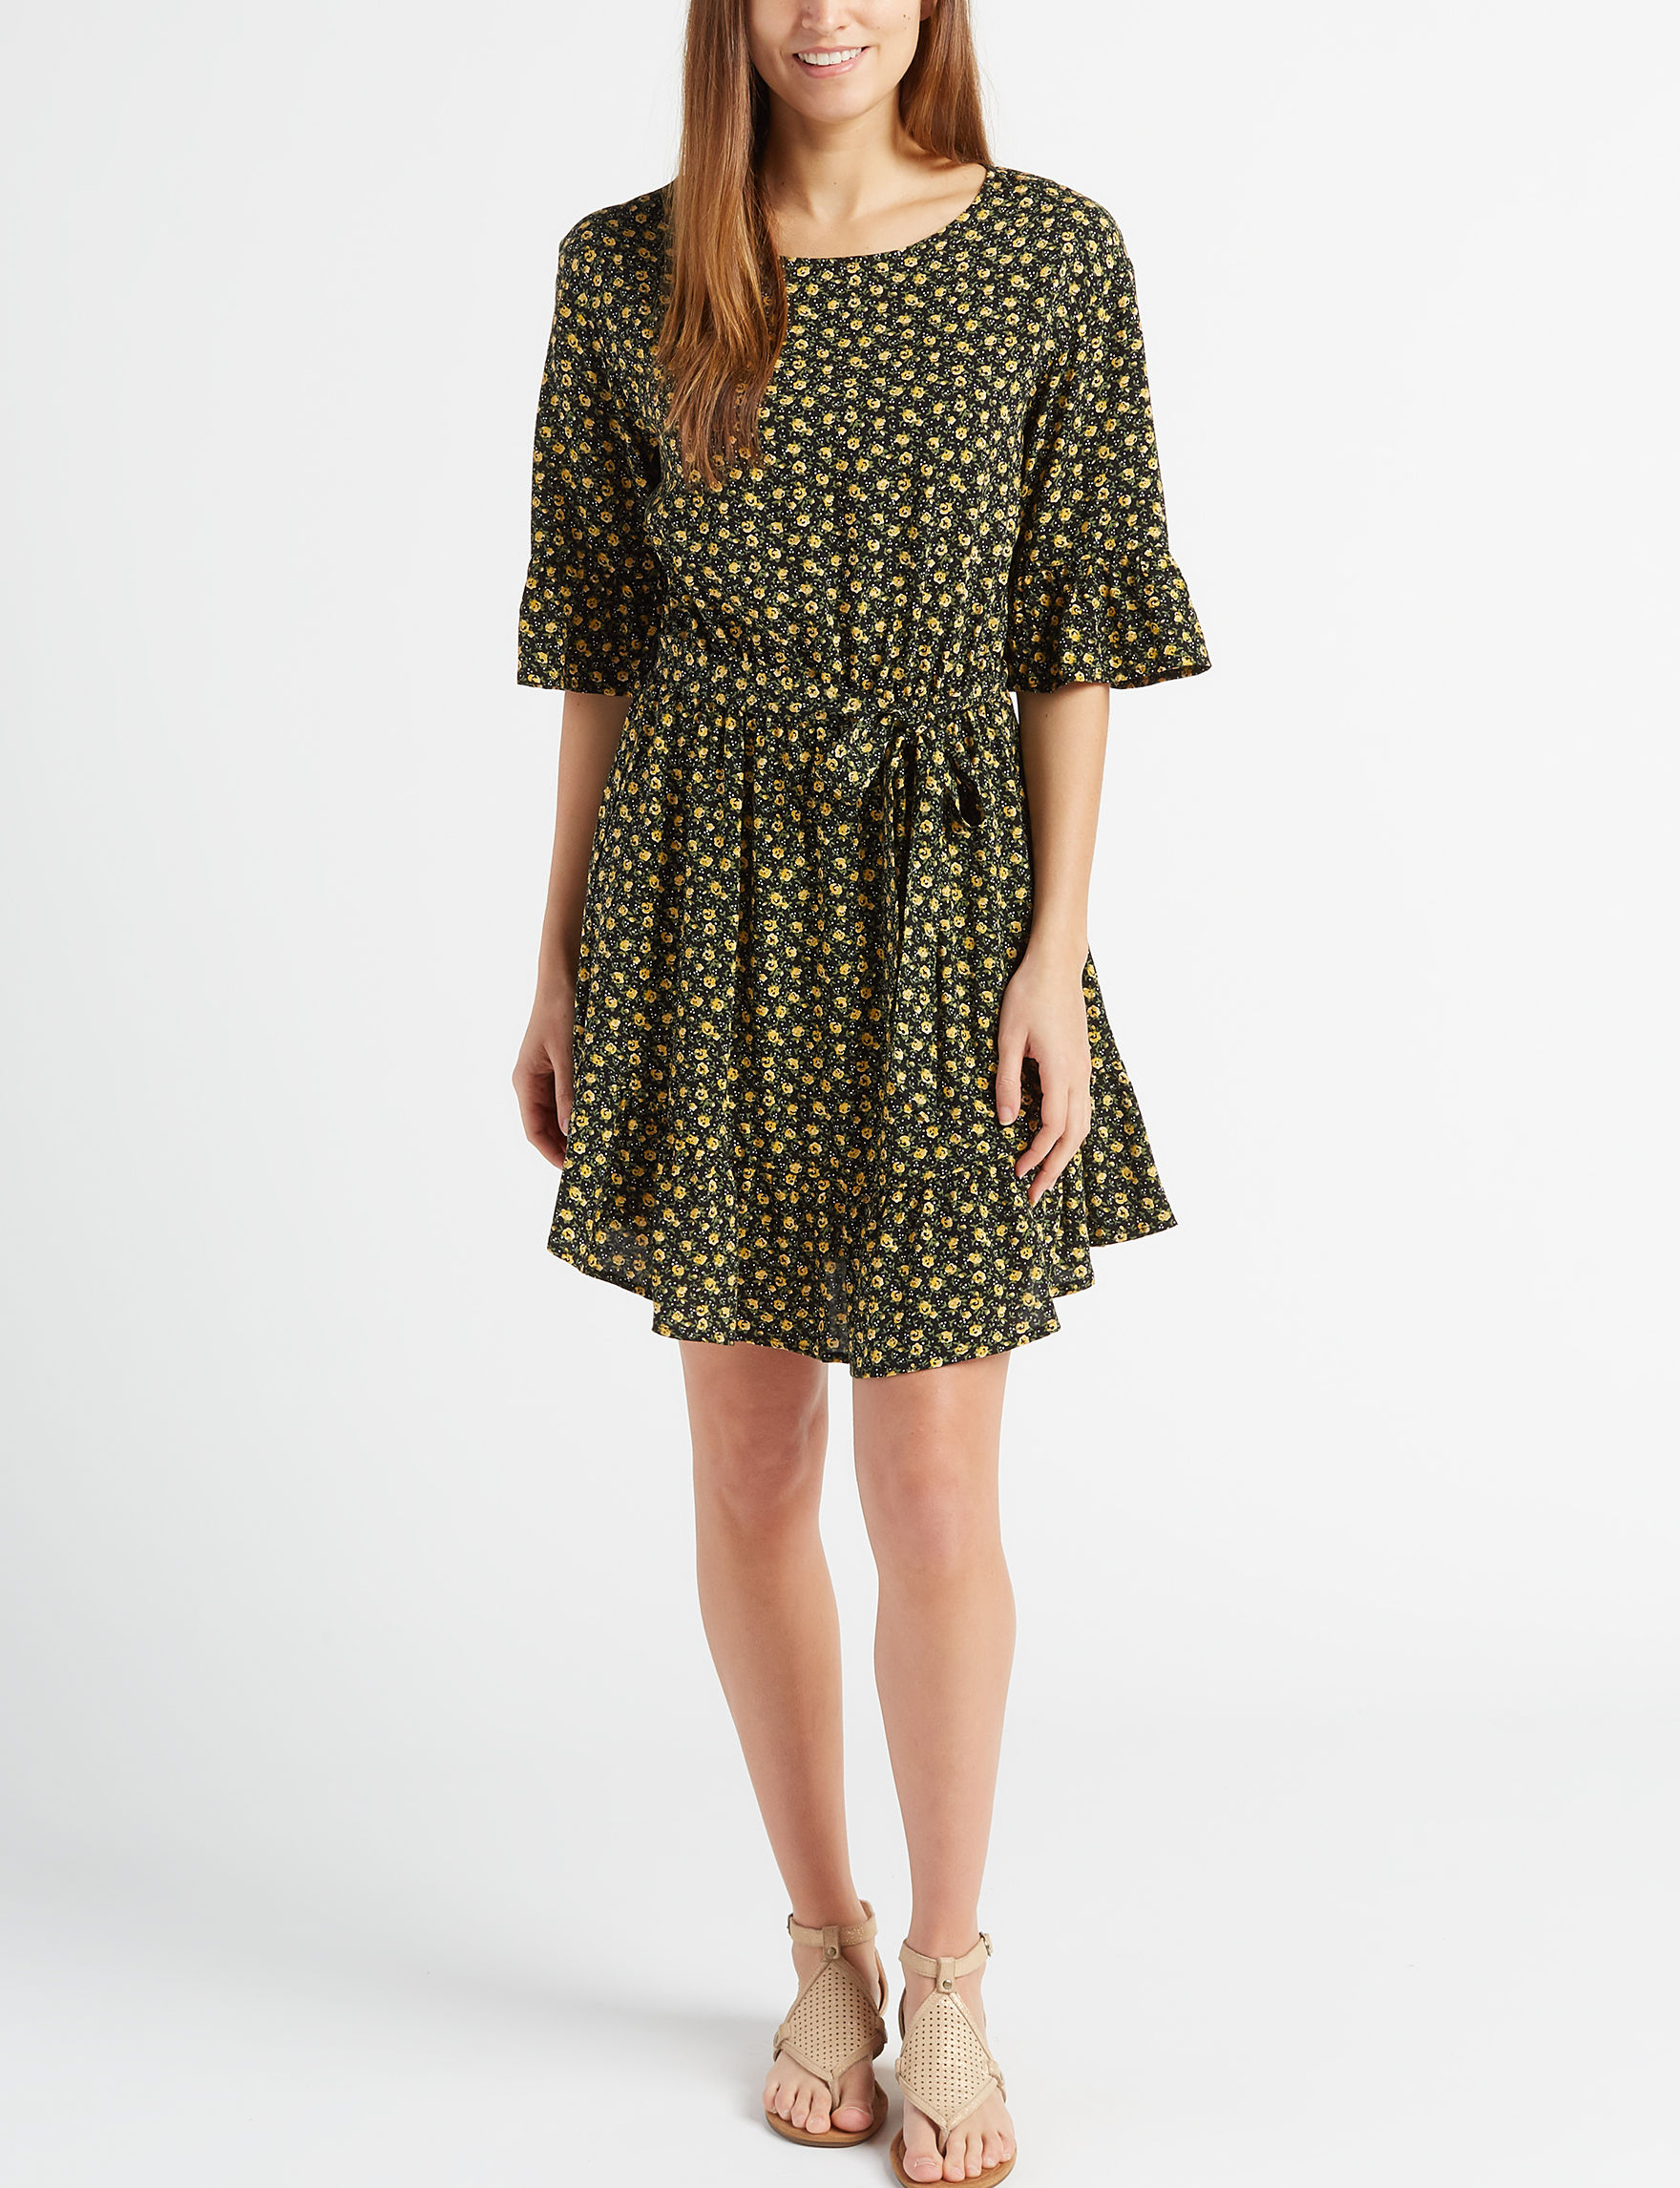 BeBop Black / Yellow Everyday & Casual Fit & Flare Dresses